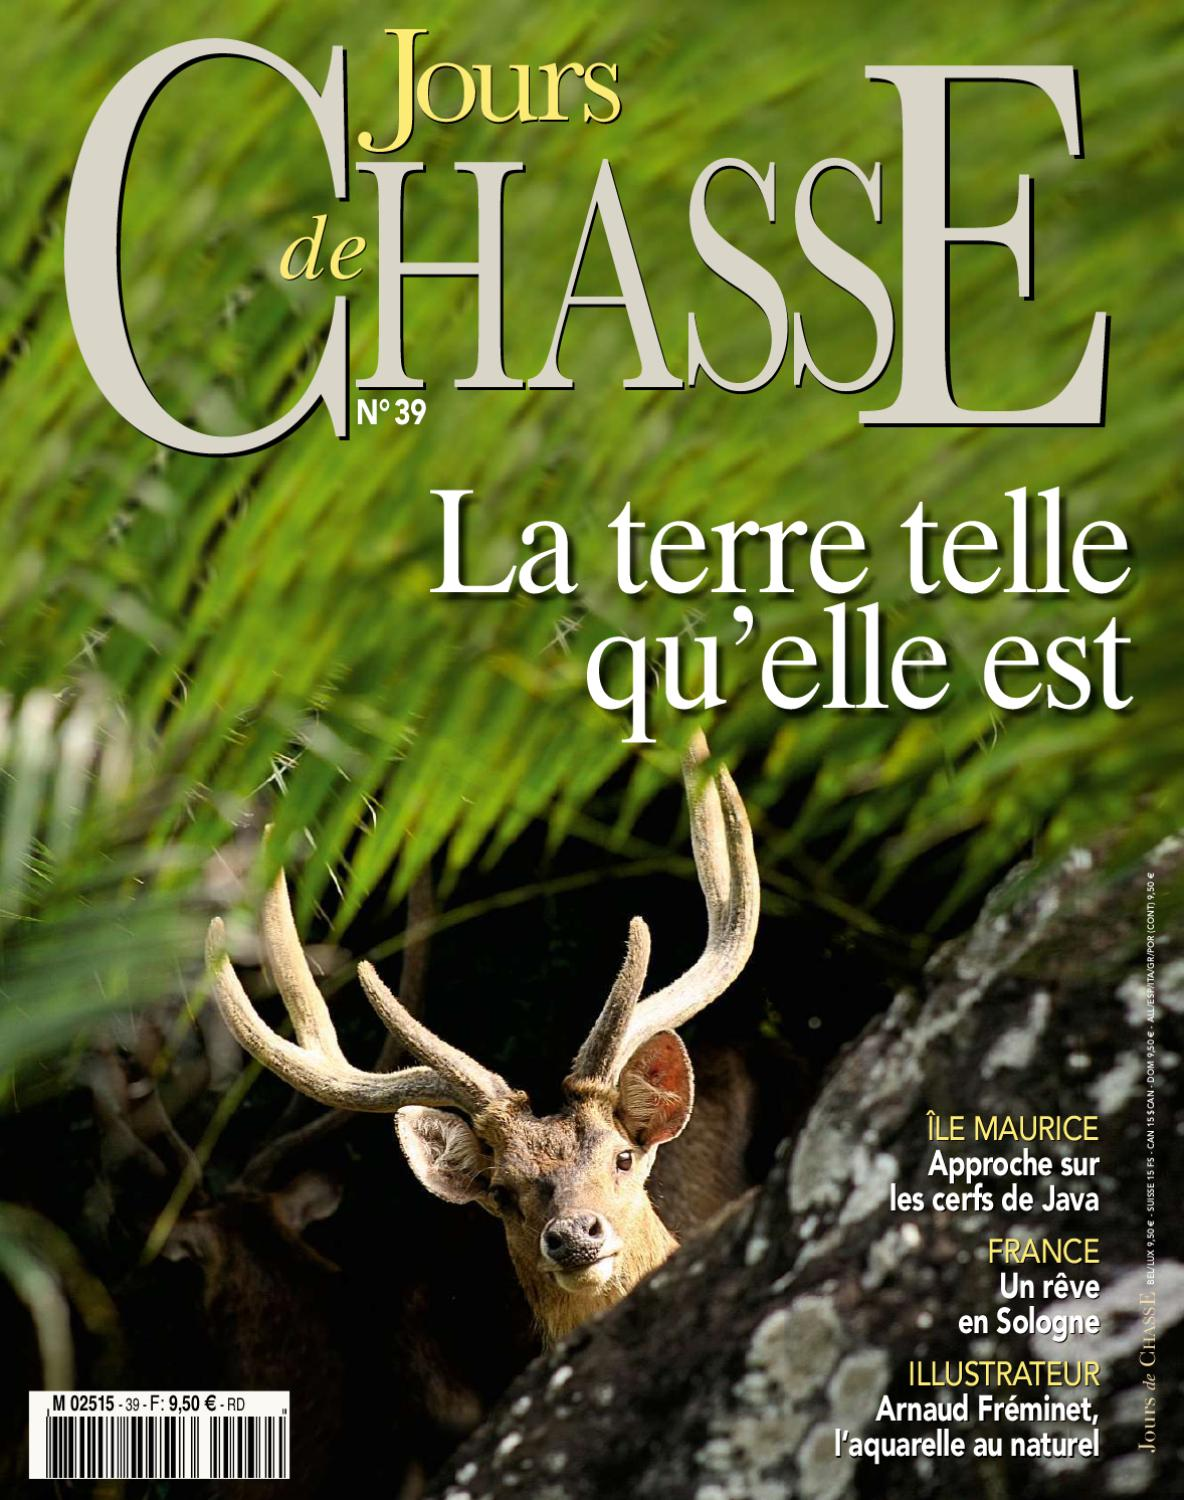 By Pa De Chasse Issuu Fred Jours roQCdeWxB